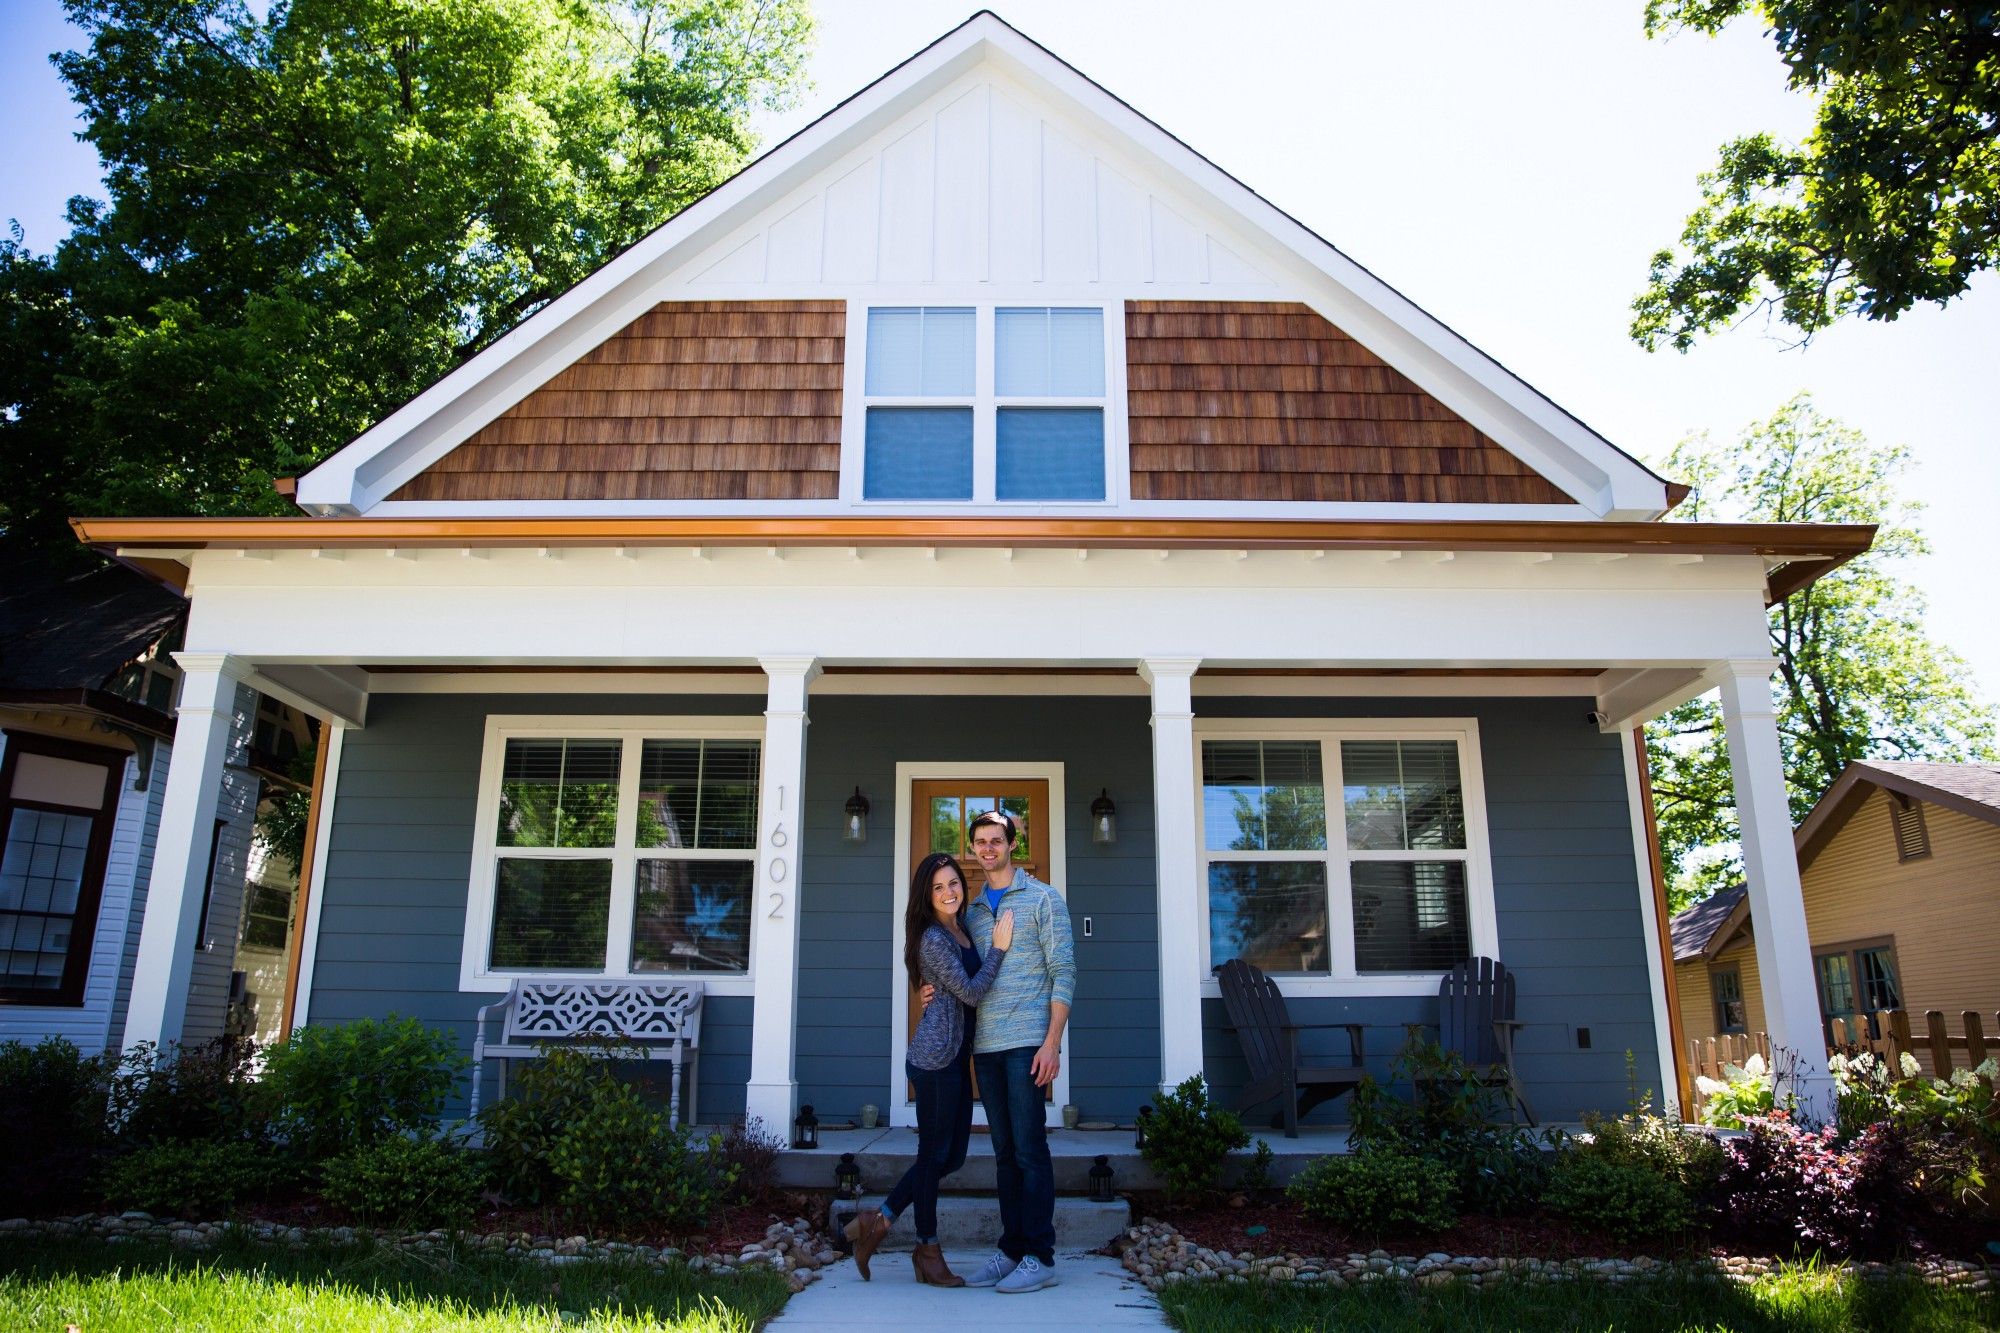 I Bought My First Home At 22 Making 30k A Year Sounds Crazy Right Well M Here To Tell You That Ownership May Be Lot More Possible For